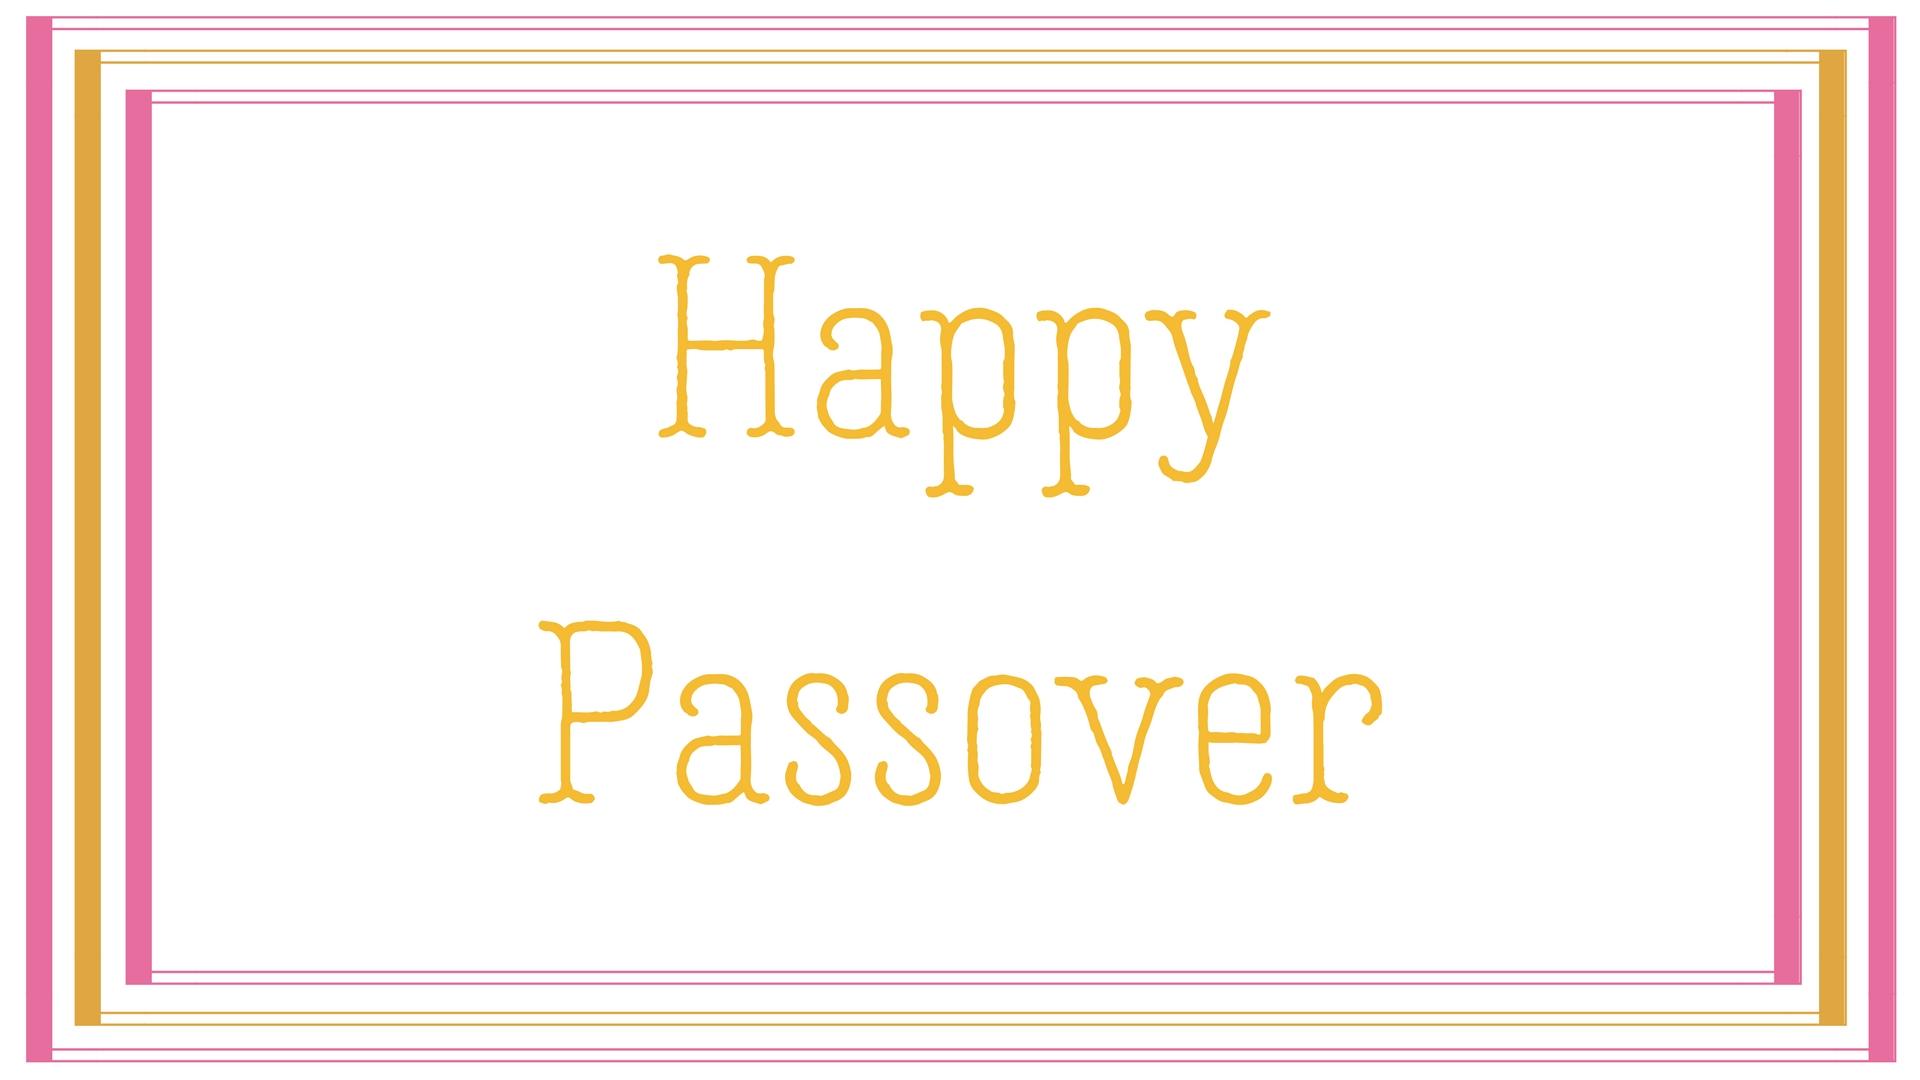 Happy Passover Rectangle Frame Greeting Card Postcard 14